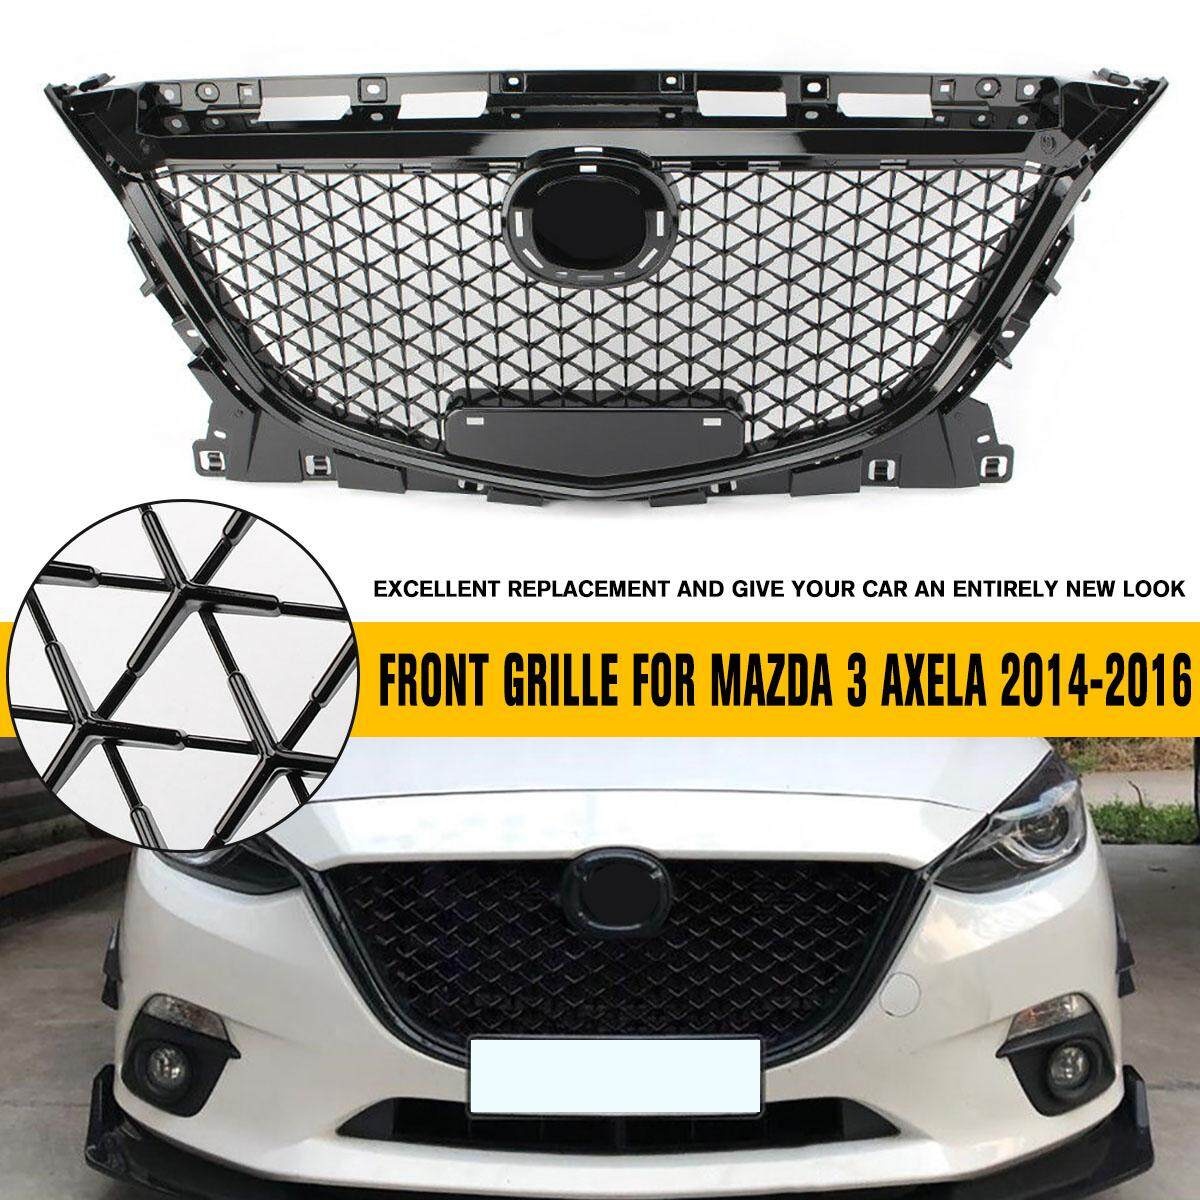 Black Front Upper Grille Honeycomb Grille For Mazda 3 Axela 2014-2016 2015